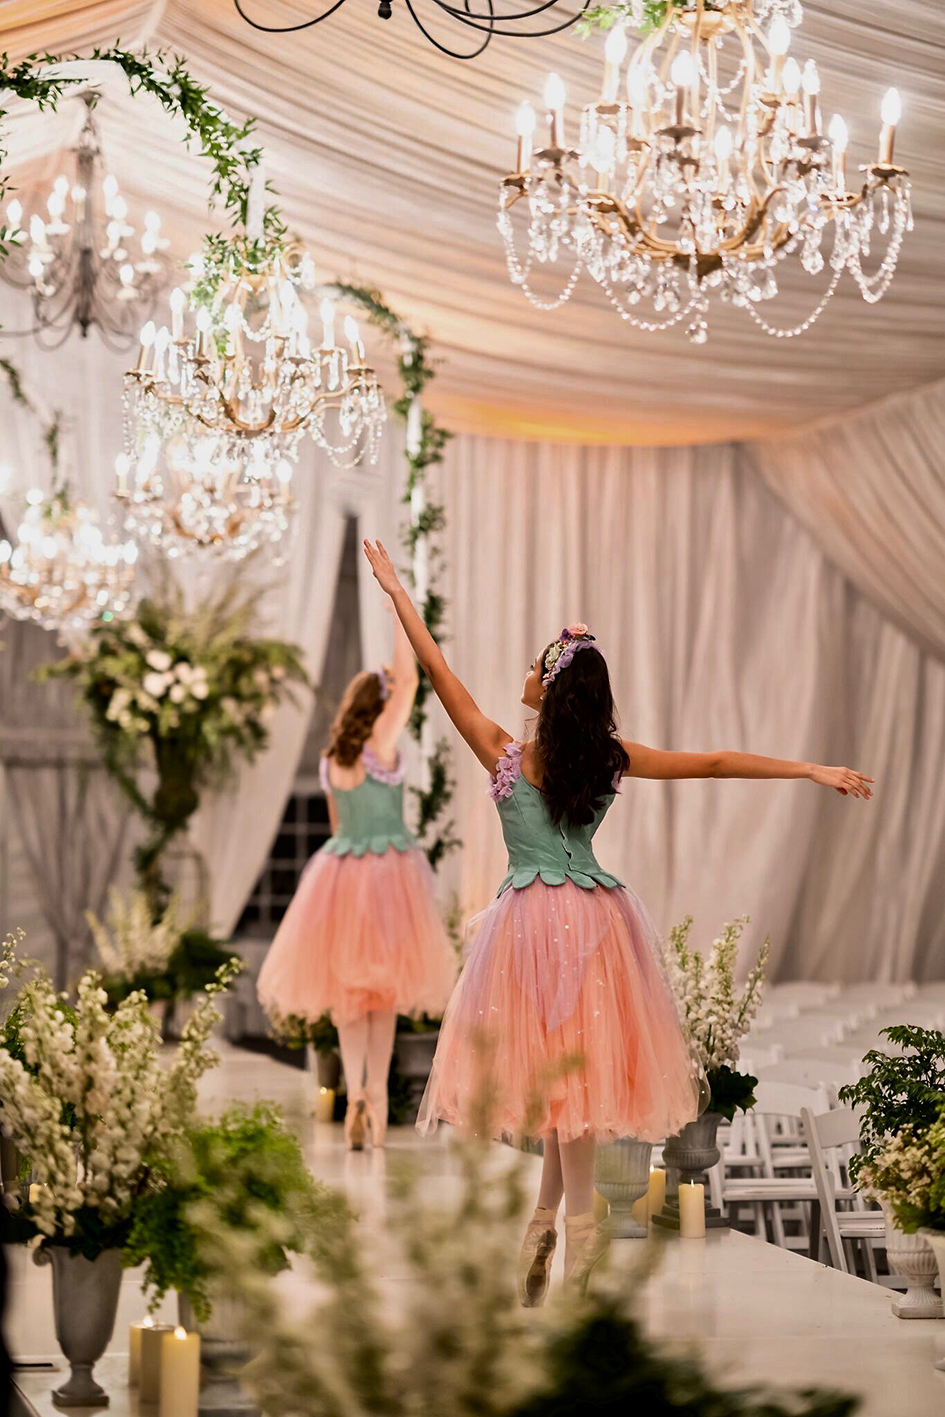 Dancers prance down the aisle at Michael and Neda's wedding at Four Seasons Westlake Village